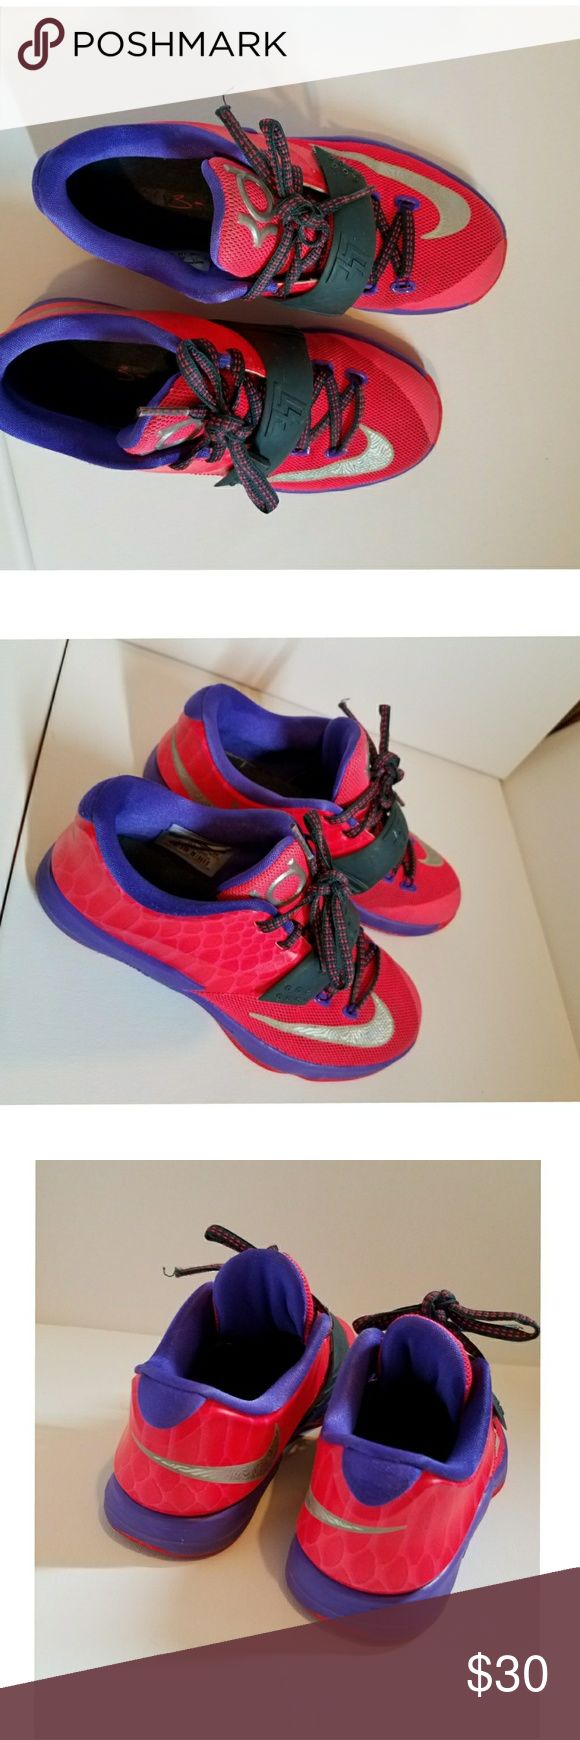 Nike kd sneakers Nike Kd sneakers really great condition size 1 Nike  Shoes Sneakers